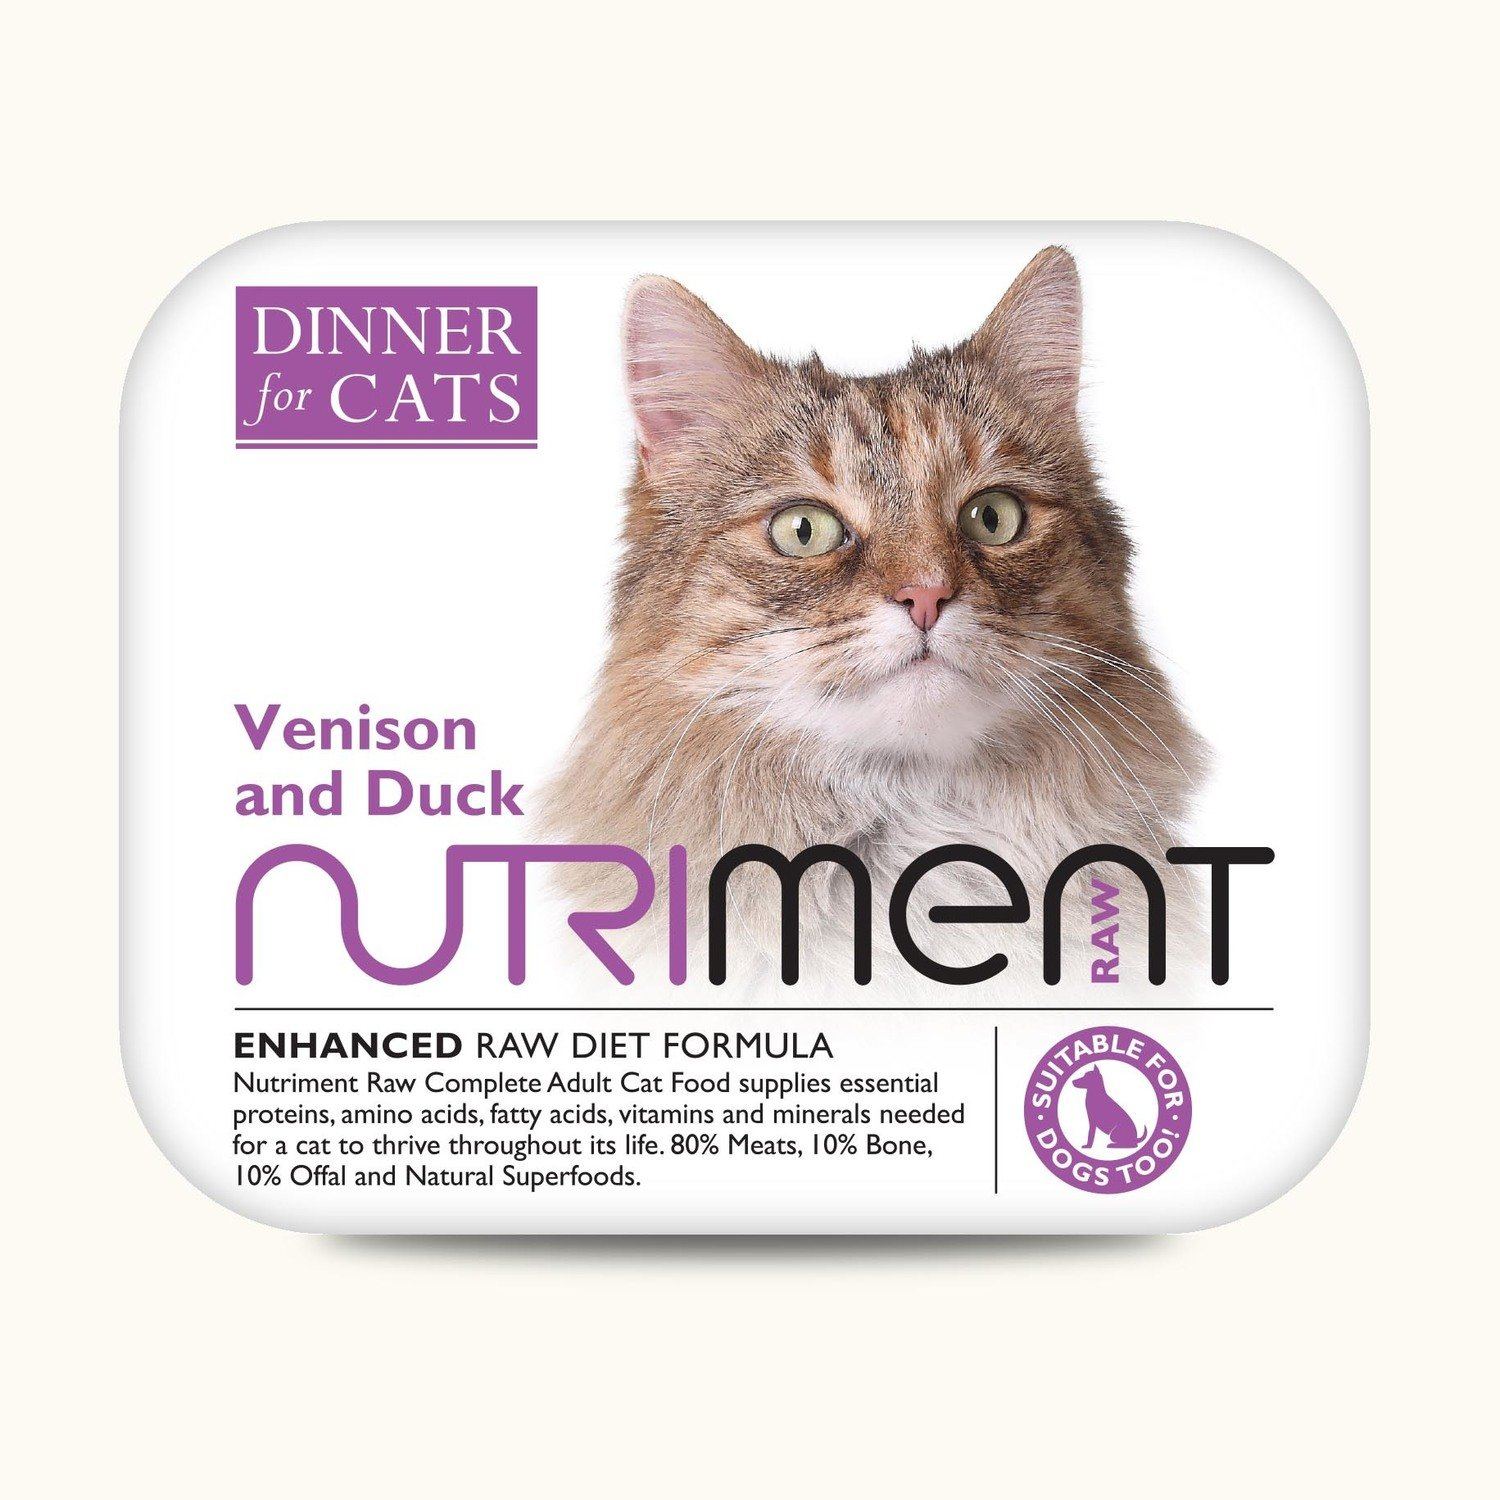 Dinner for Cats - Venison and Duck